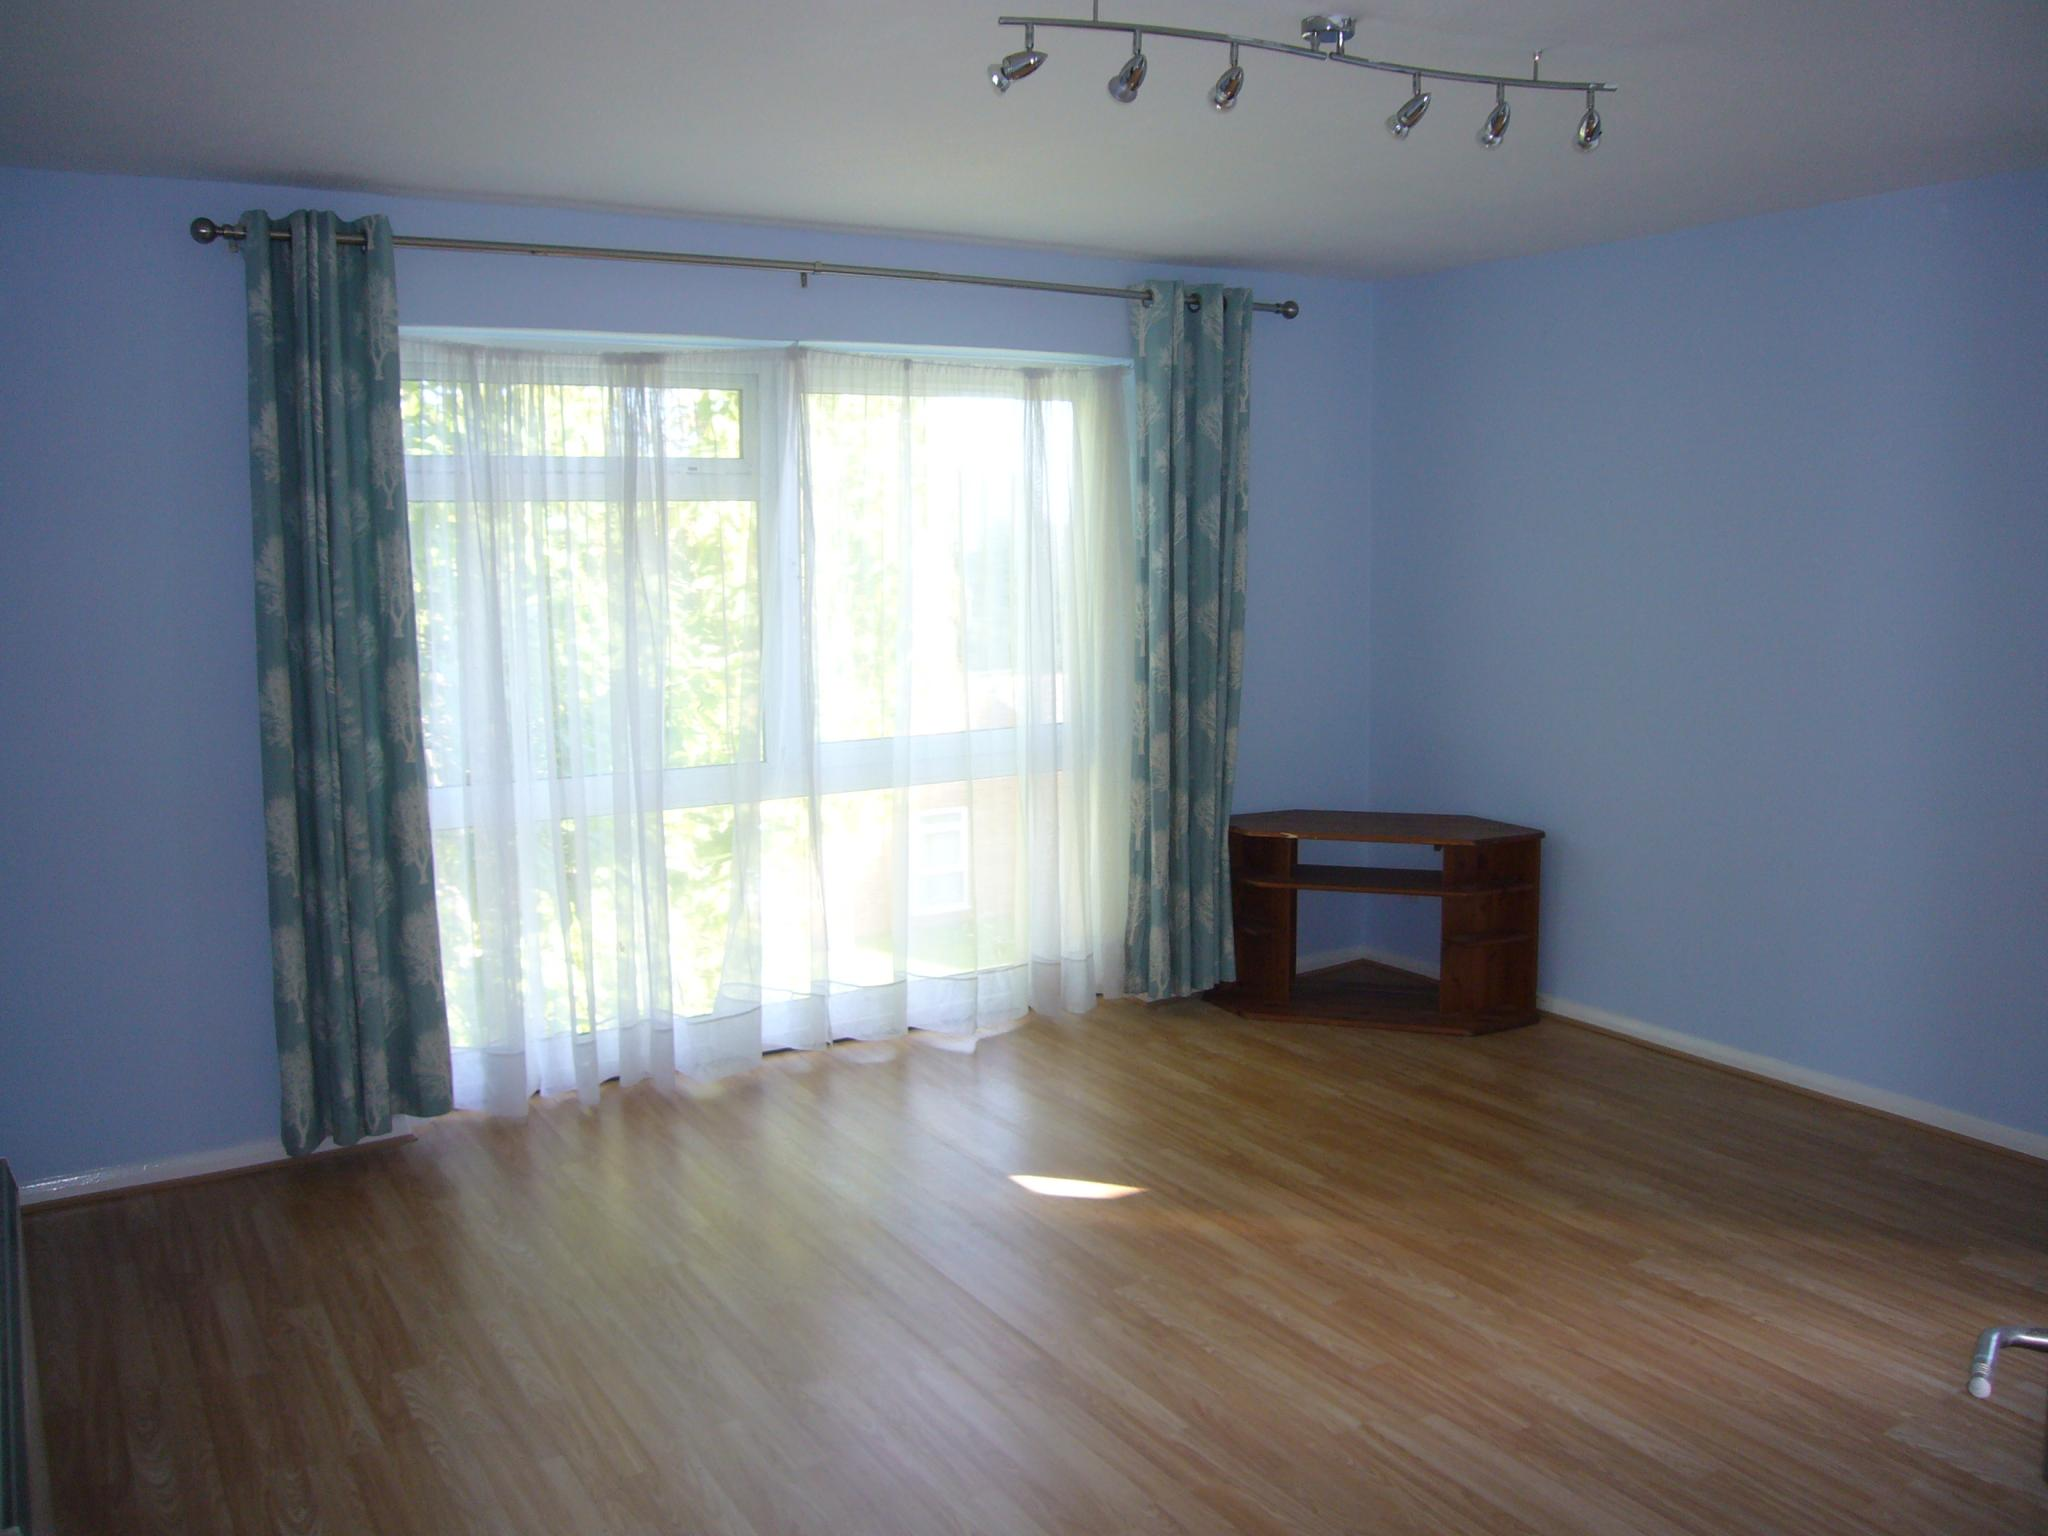 worcester default rental asp f apartments listings bedroom